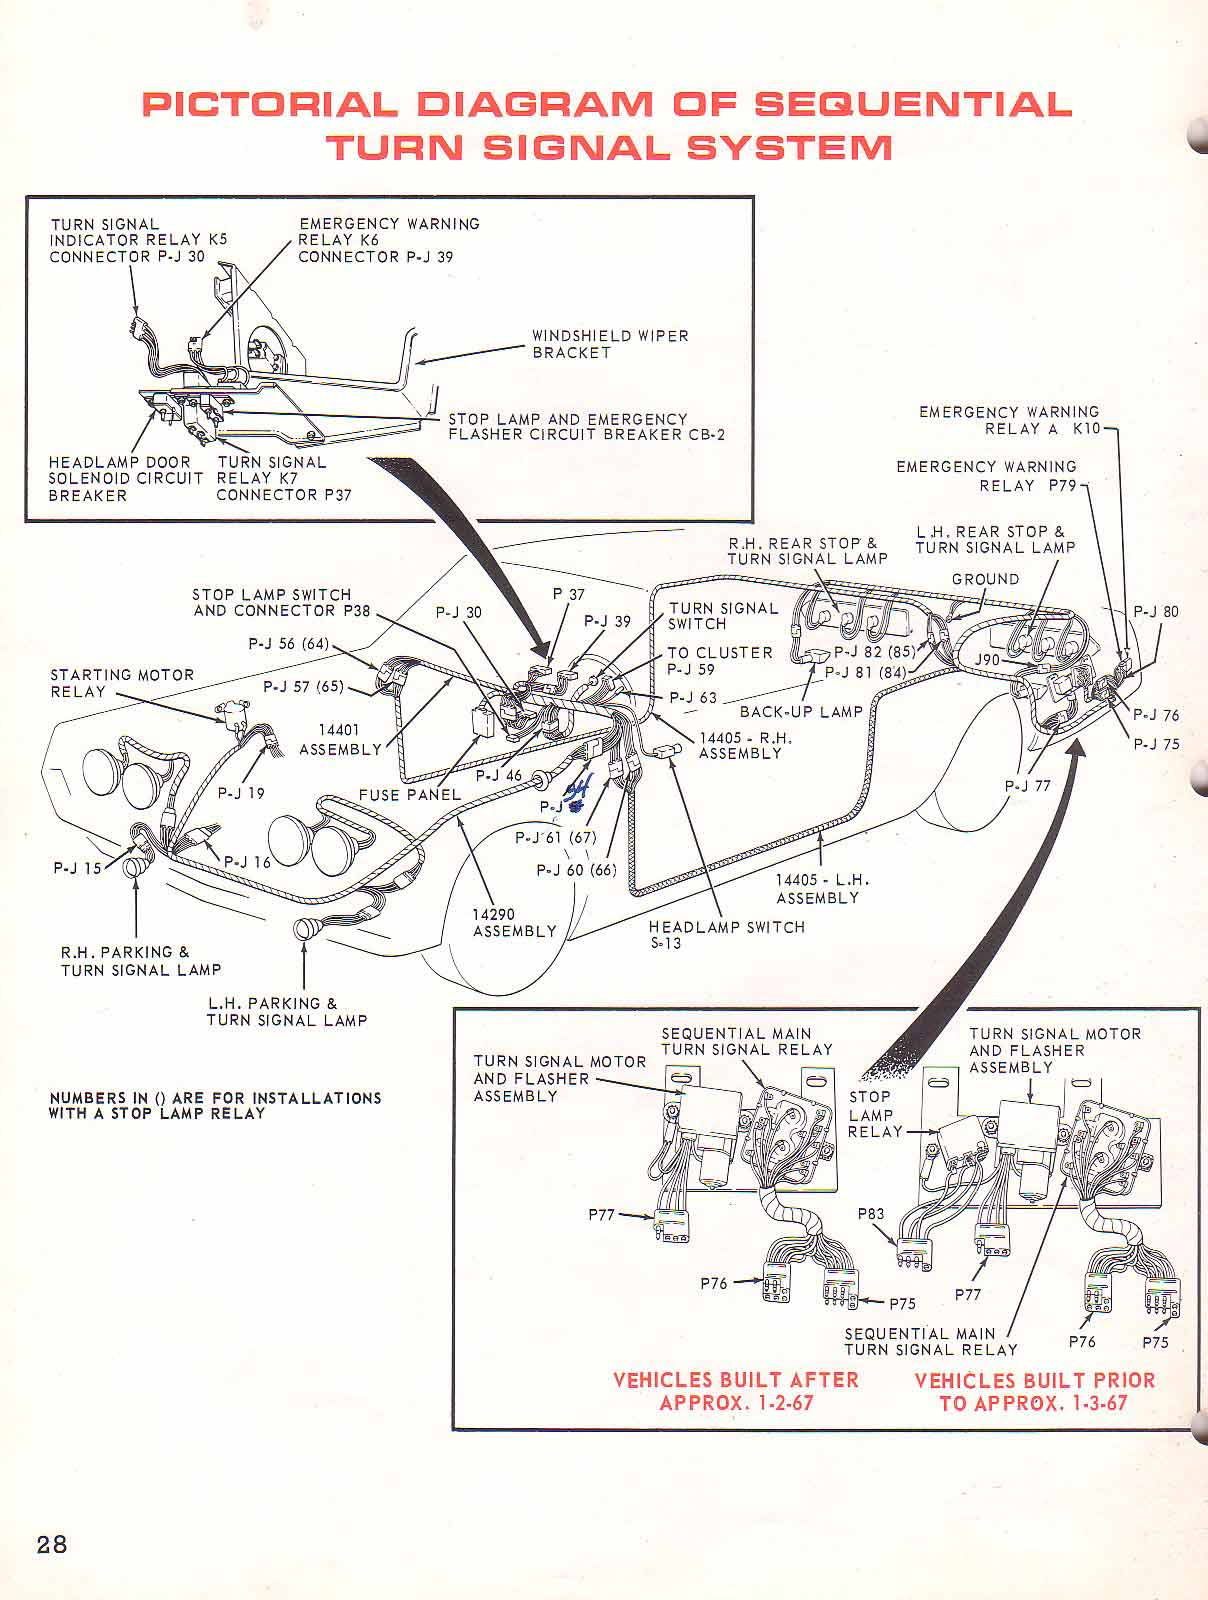 1969 Cougar Turn Signal Wiring Diagram Schematic 2019 Free 1968 Camaro Chevrolet Ss Engine Partment